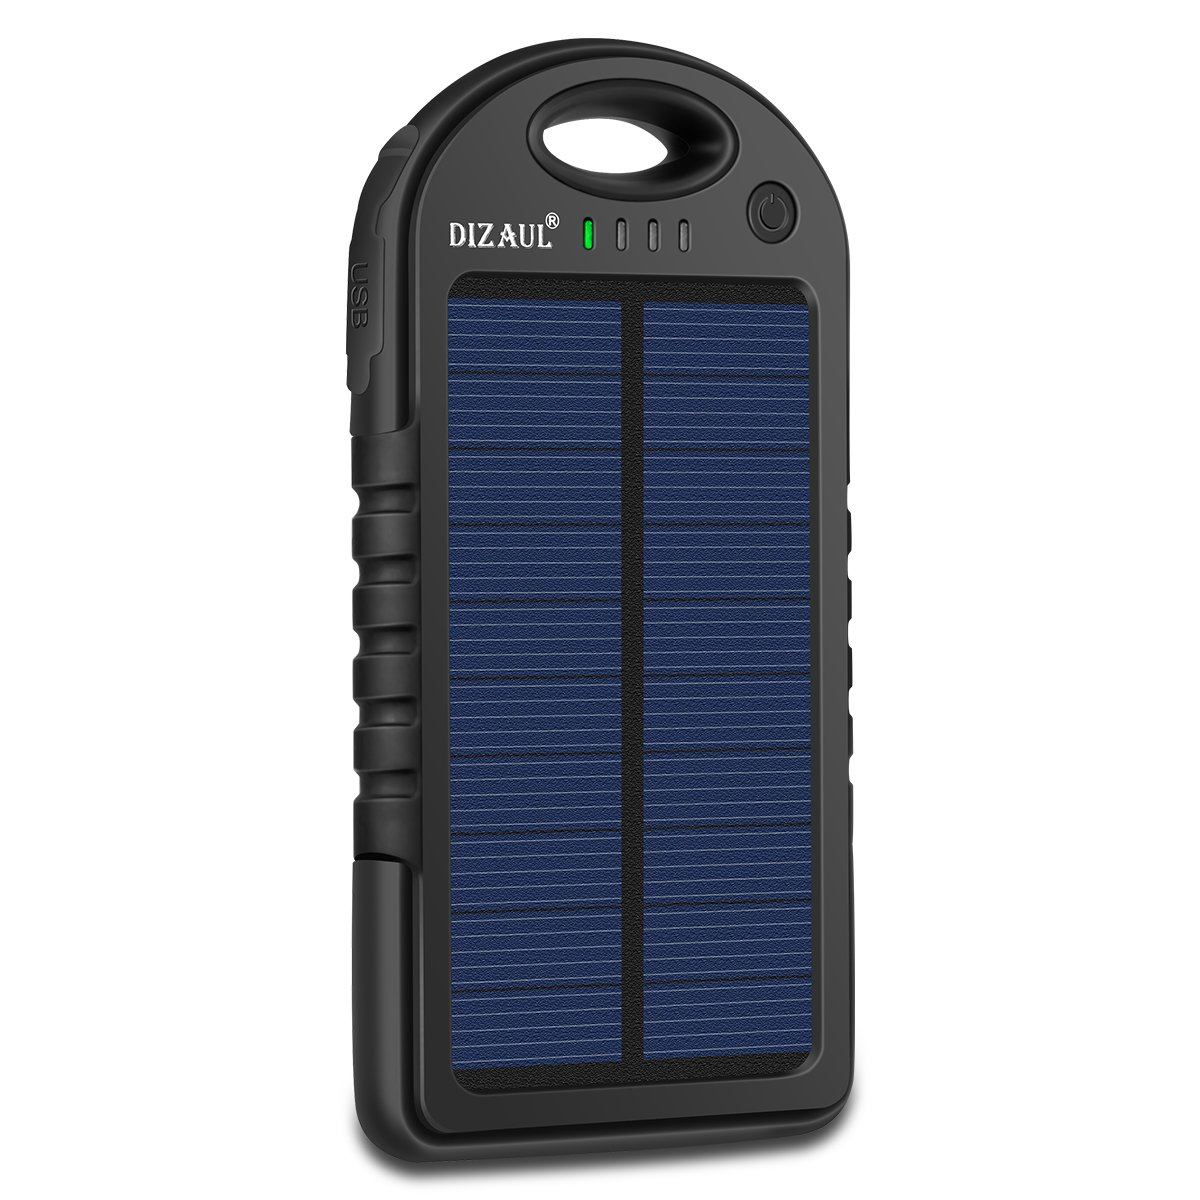 Solar Charger, Dizaul 5000mAh Portable Solar Power Bank Waterproof/Shockproof/Dustproof Dual USB Battery Bank for Cell Phone, Samsung, Android Phones, Windows Phones, GoPro Camera, GPS and More by dizauL